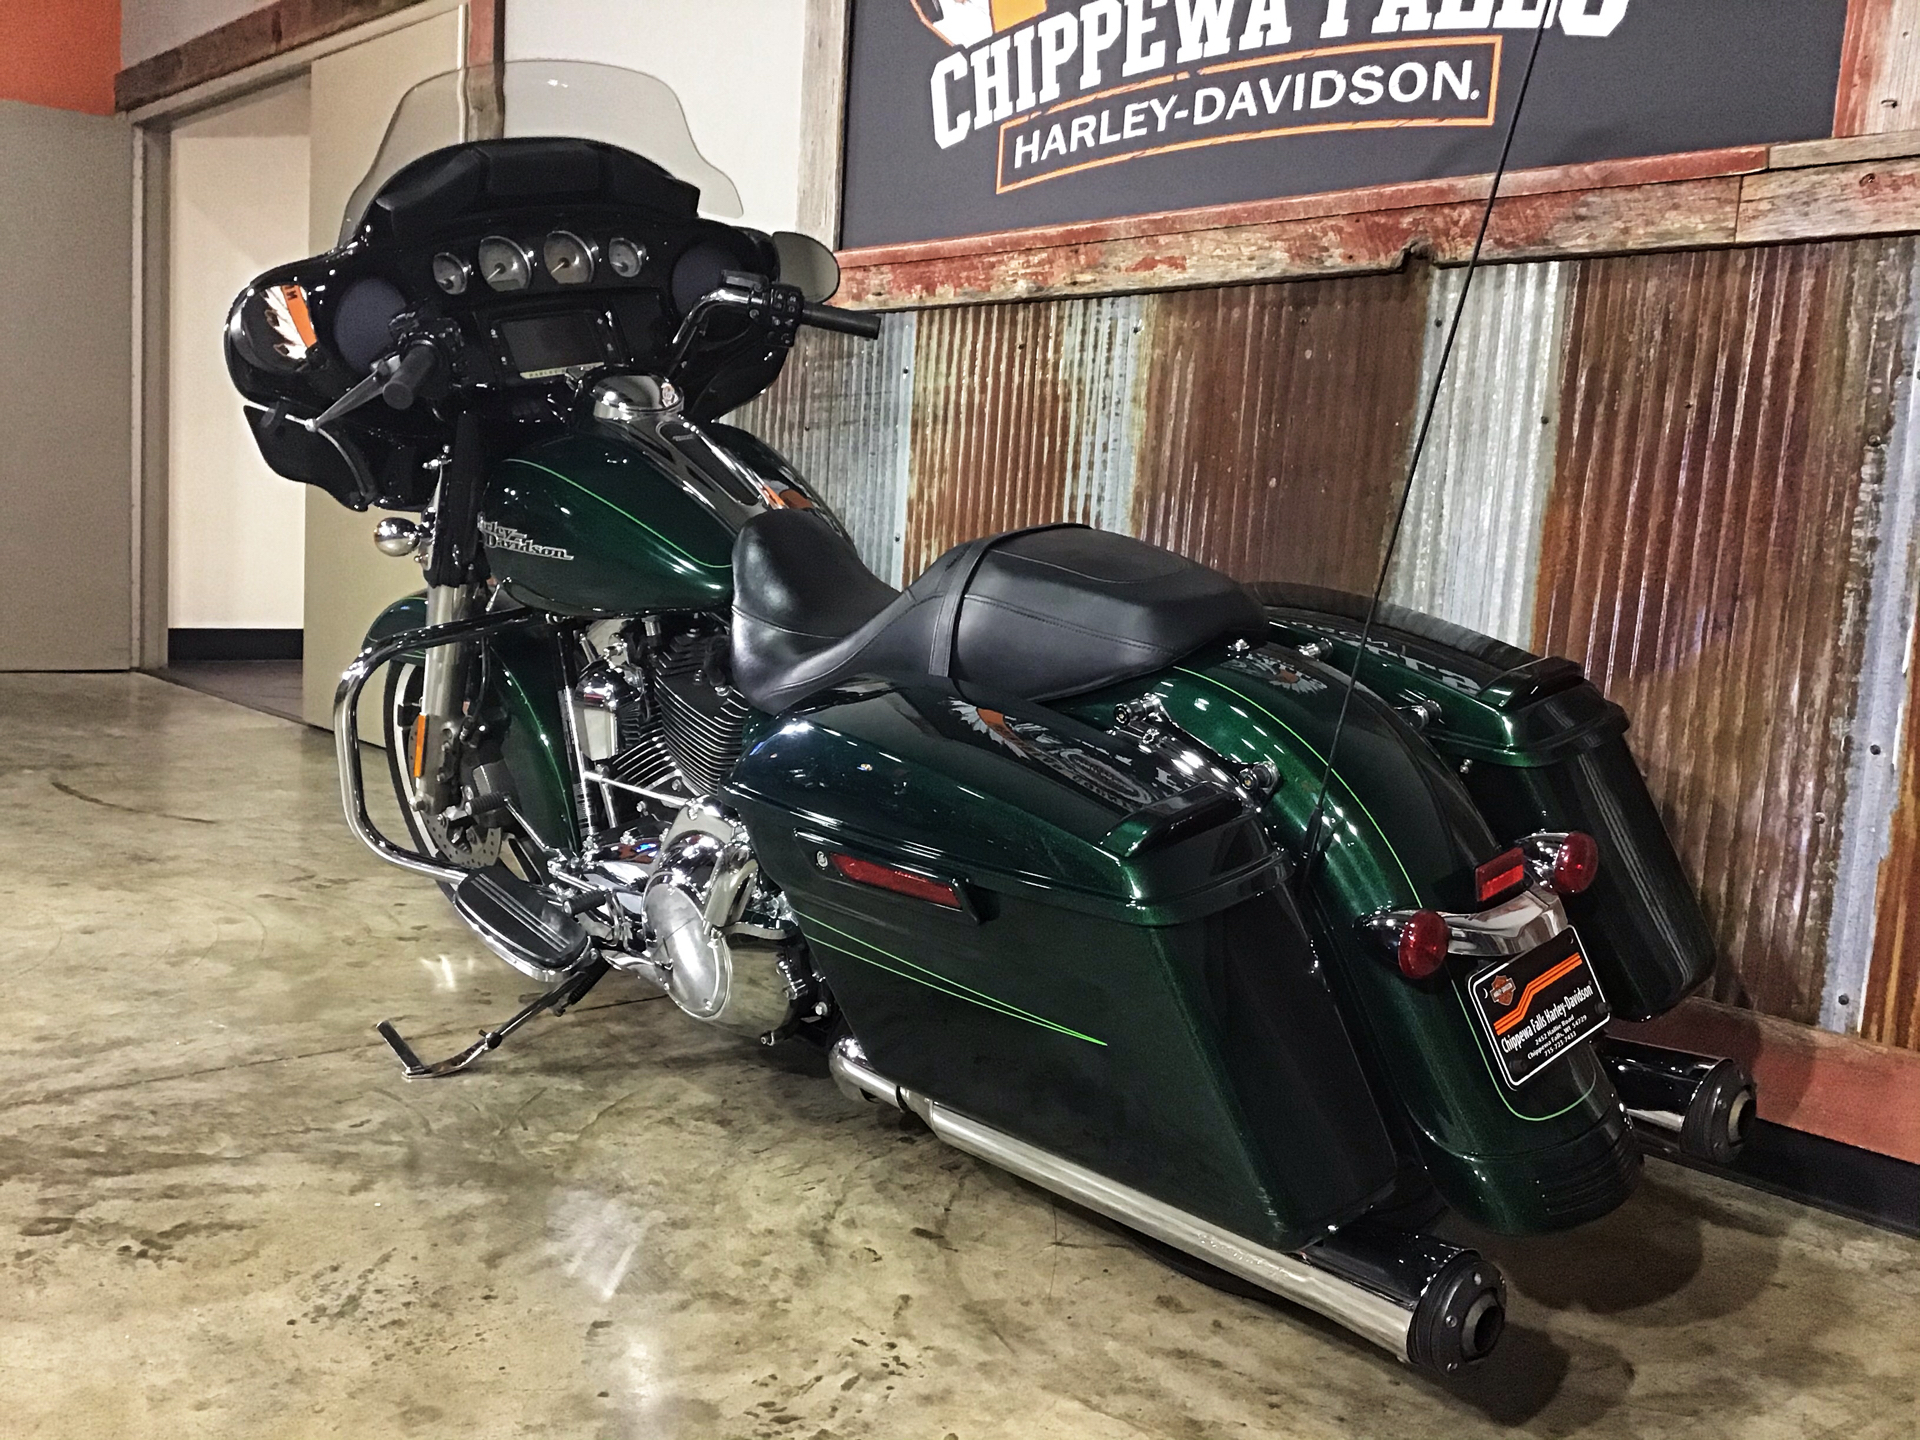 2015 Harley-Davidson Street Glide® Special in Chippewa Falls, Wisconsin - Photo 12